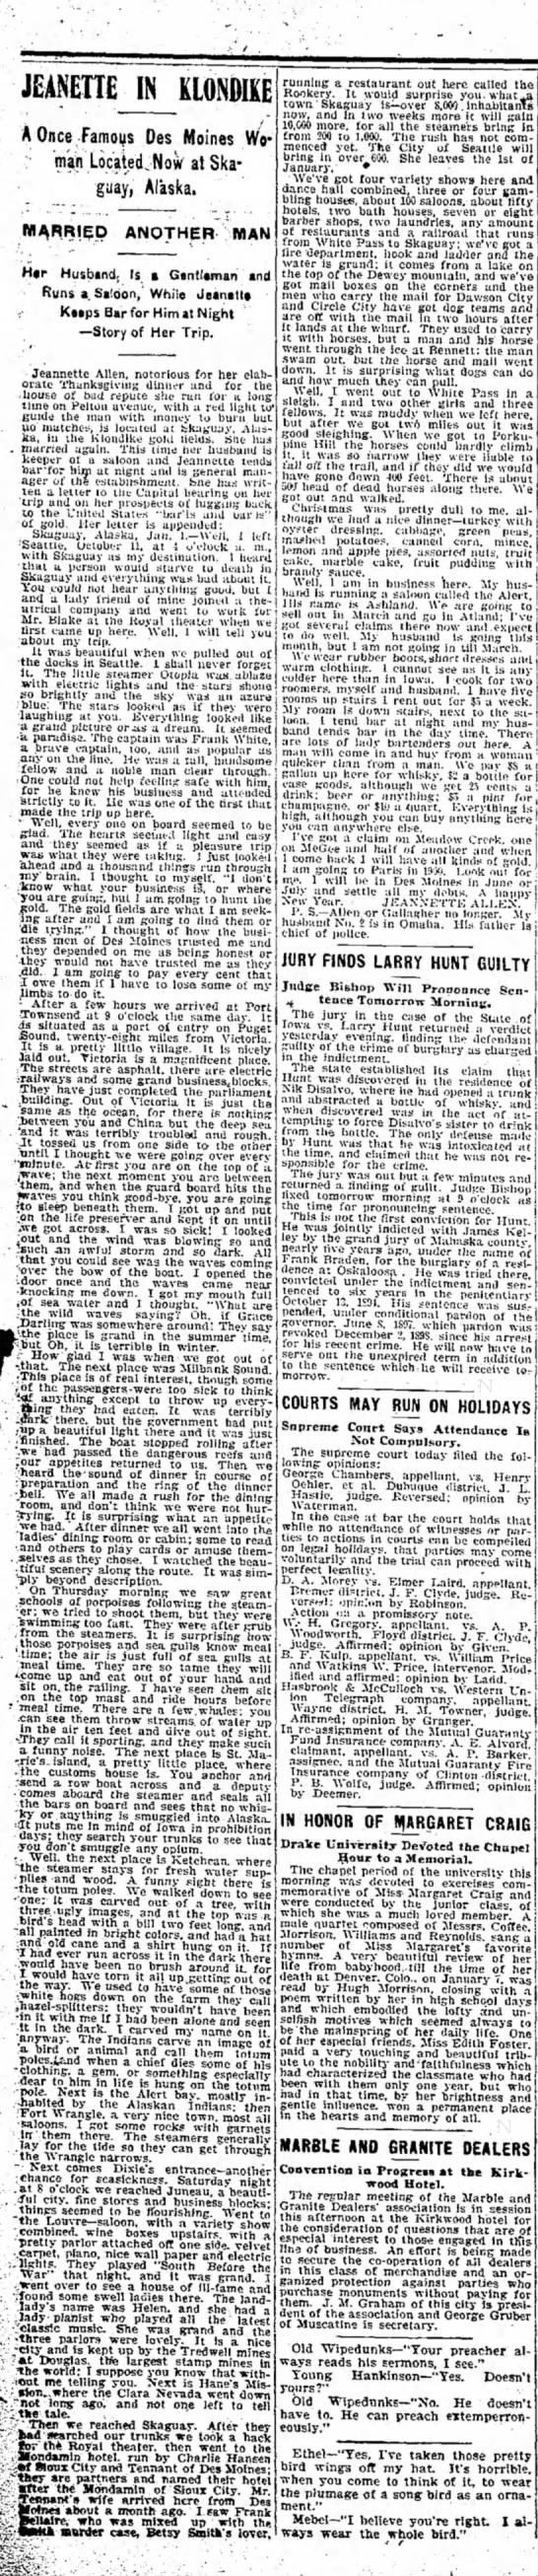 Jeannette Allen Marries